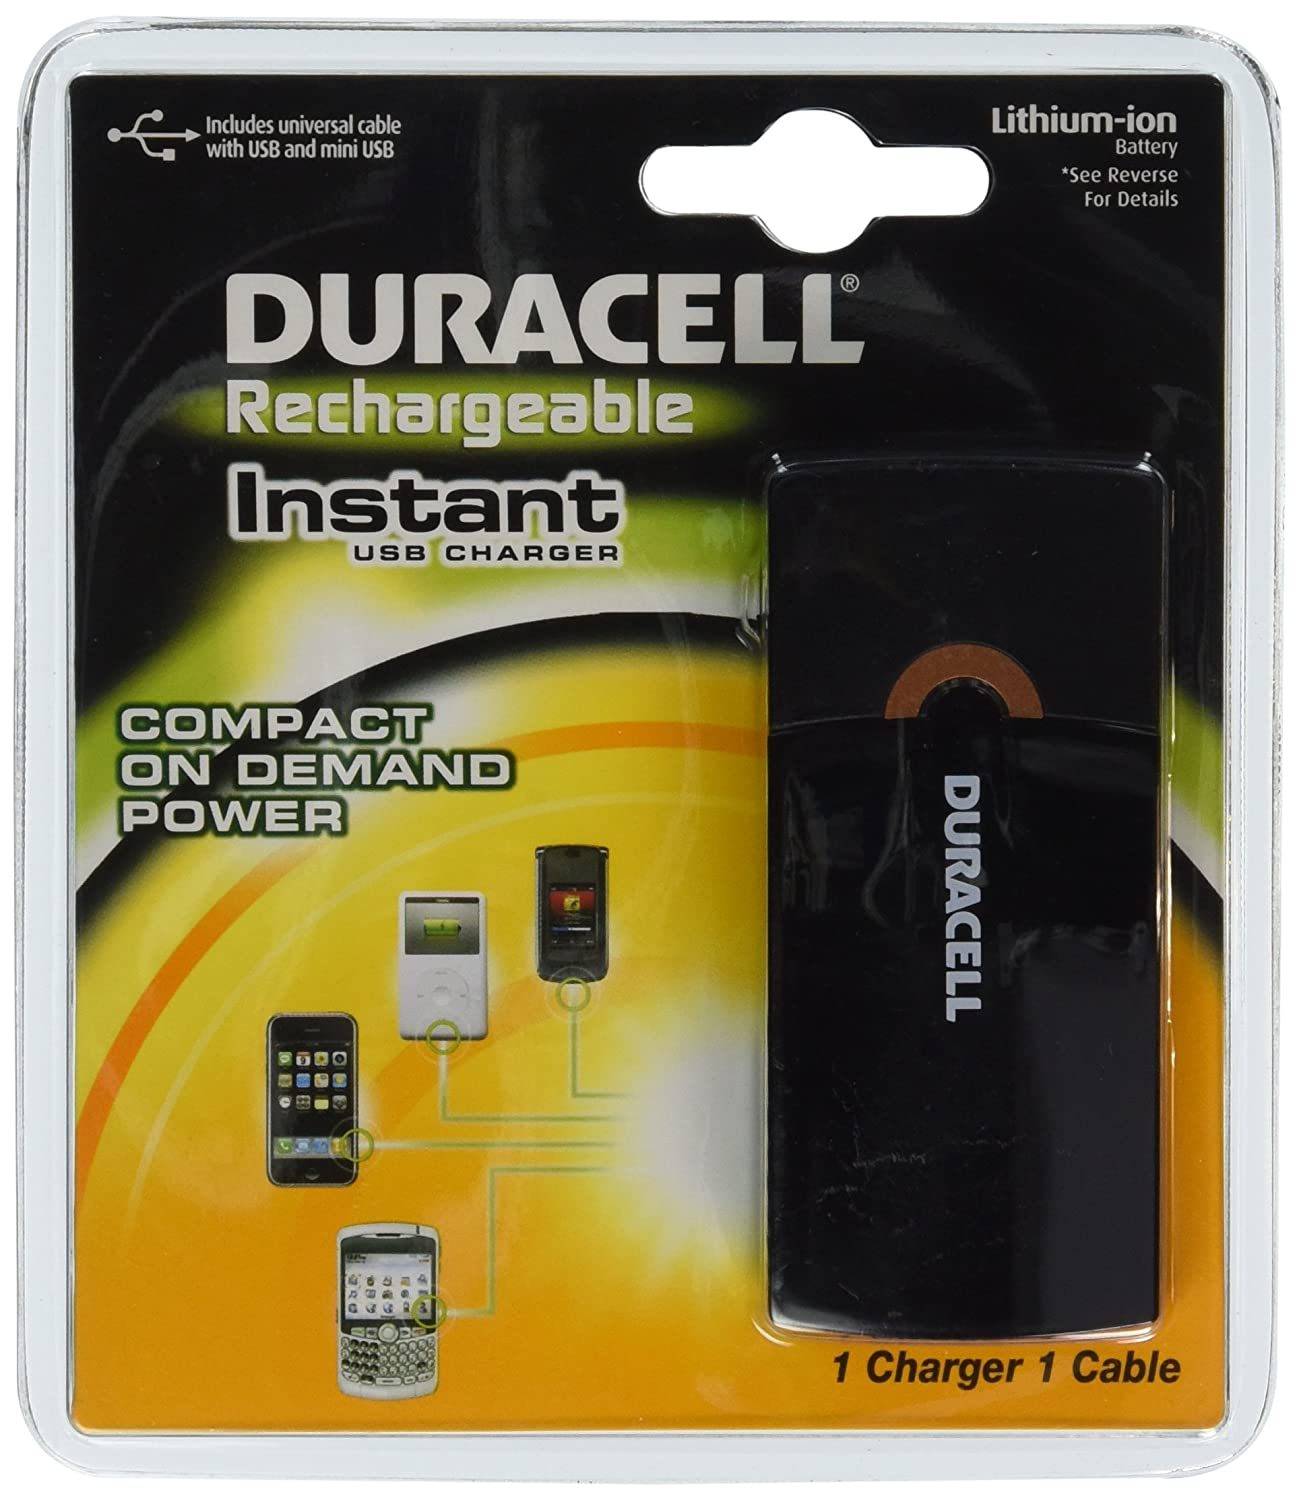 Amazon.com: Duracell Instant USB Charger/Includes Universal Cable with USB  & mini USB, 1 Count: Health & Personal Care